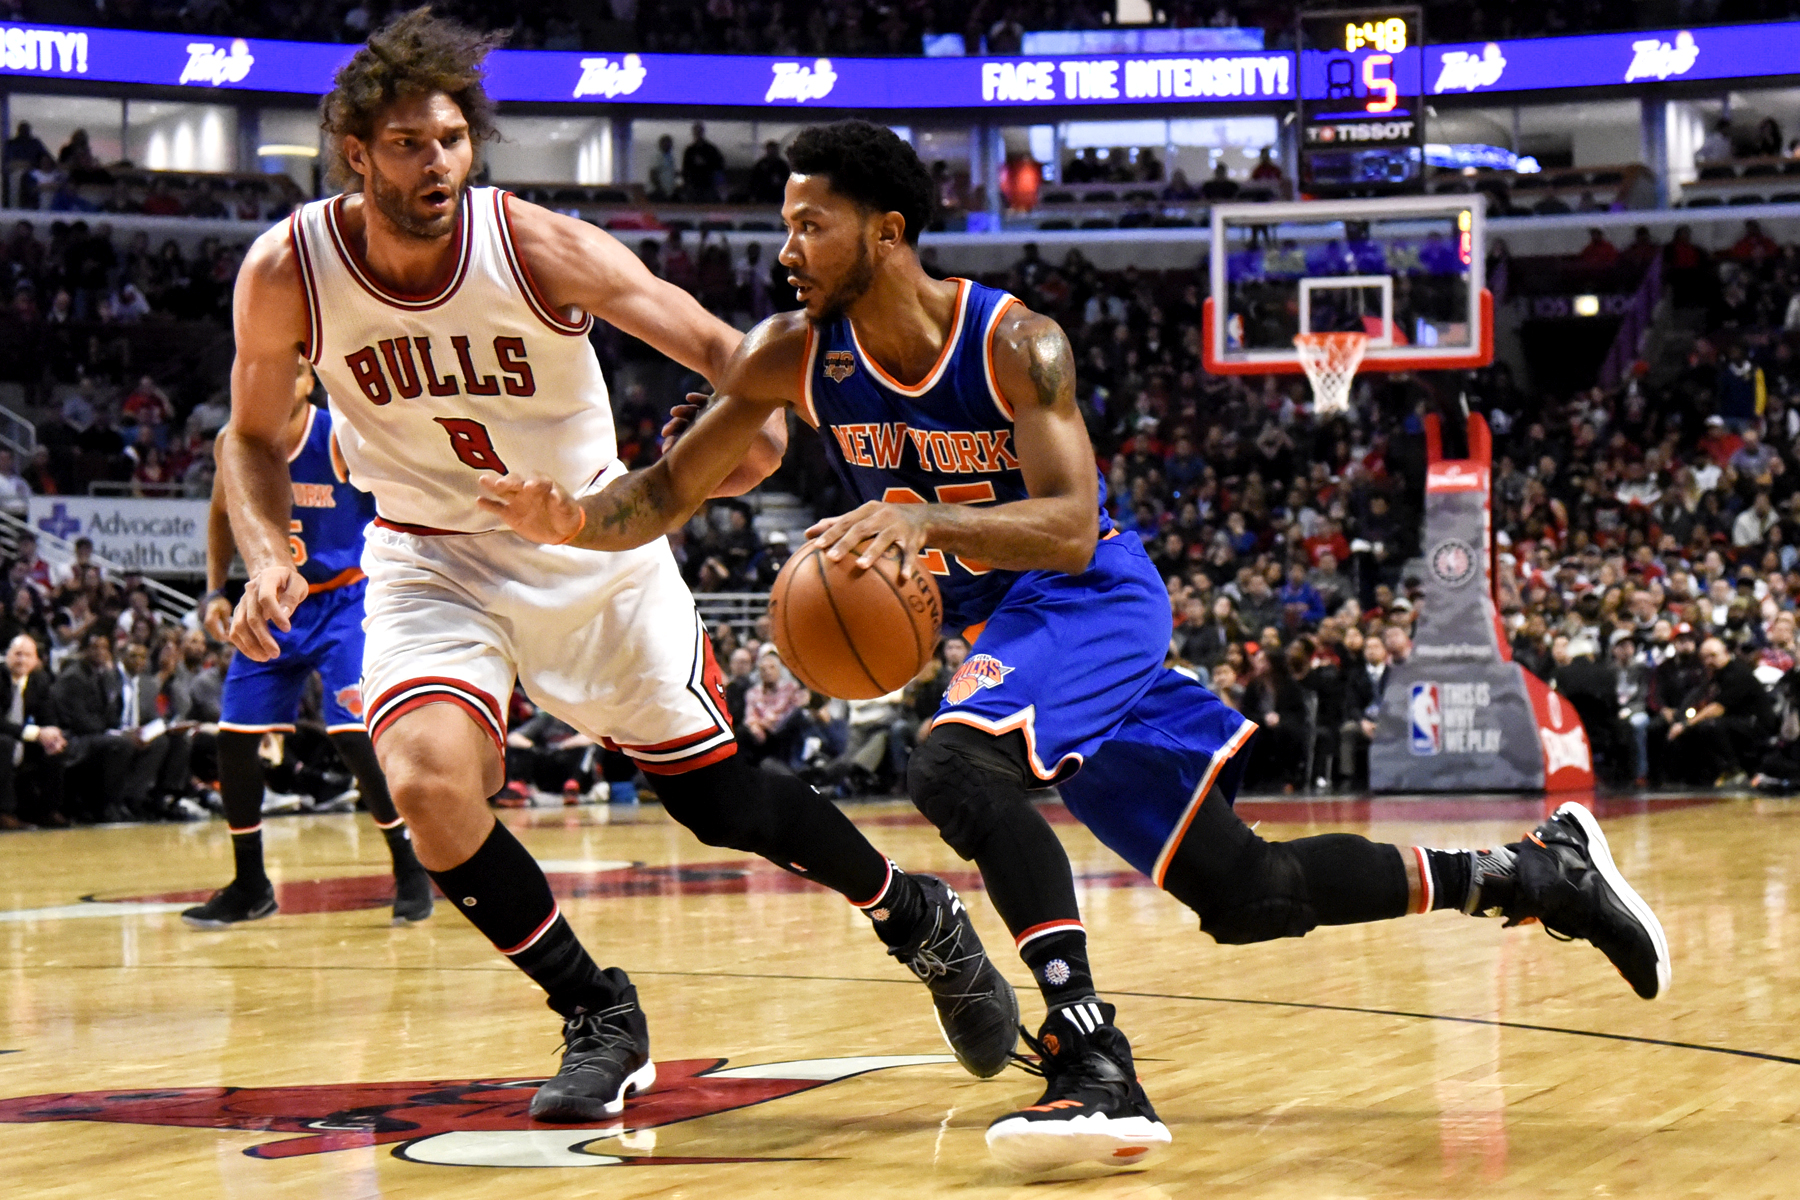 Derrick Rose silences the haters as Knicks earn big win over Bulls